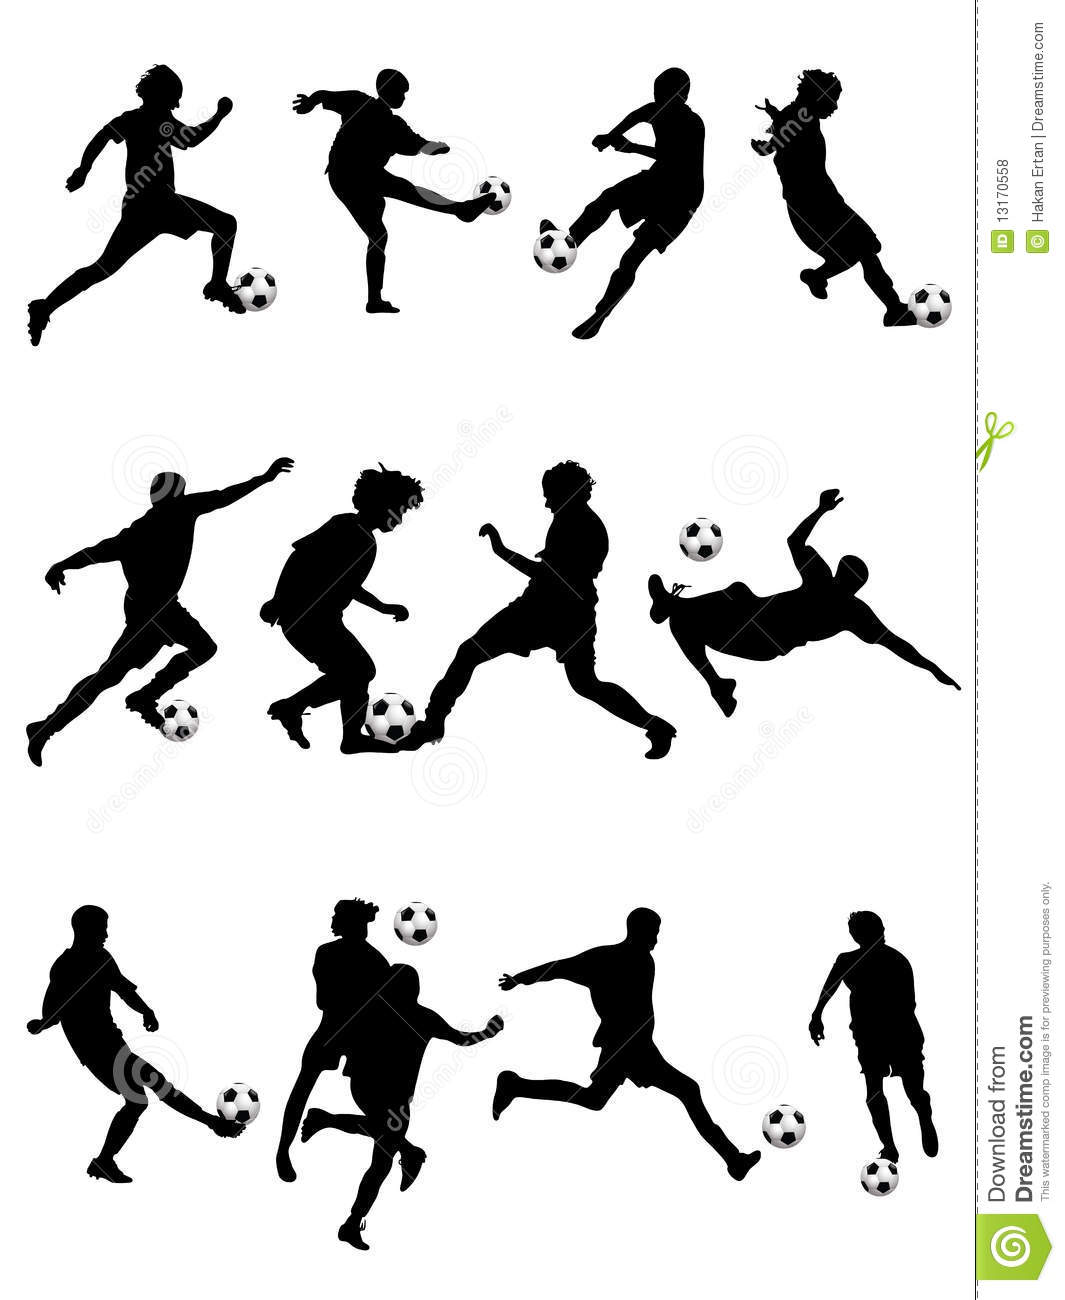 Soccer Silhouette stock vector. Image of athletics